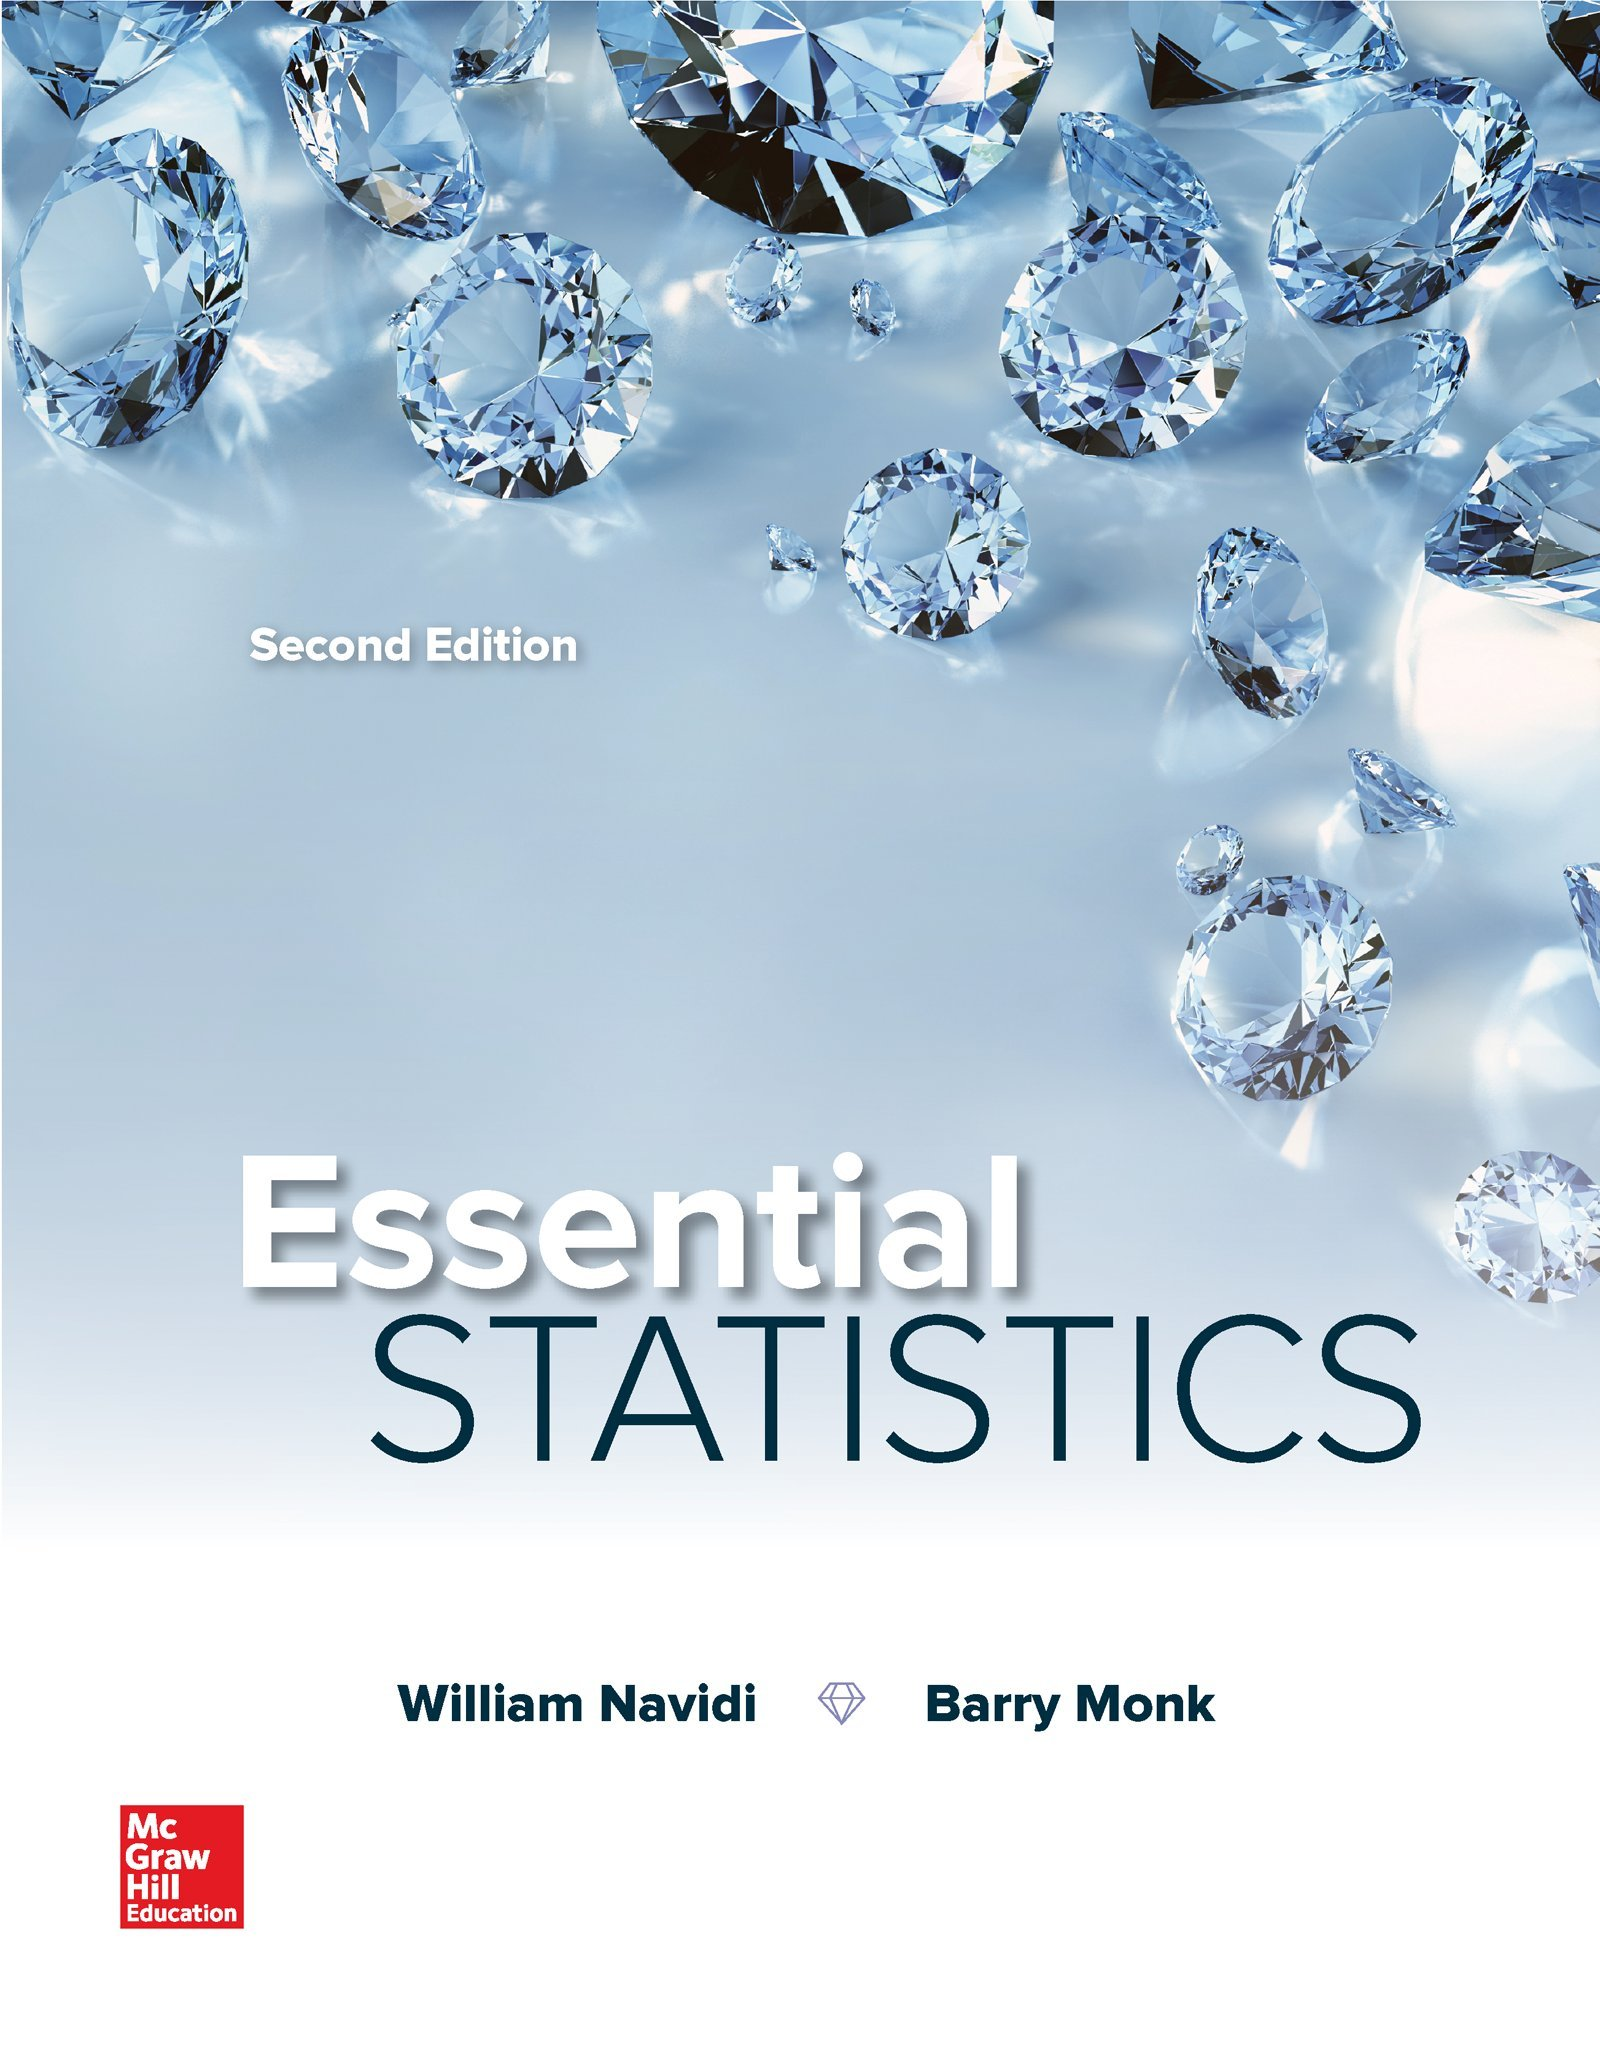 Essential Statistics by McGraw-Hill Education